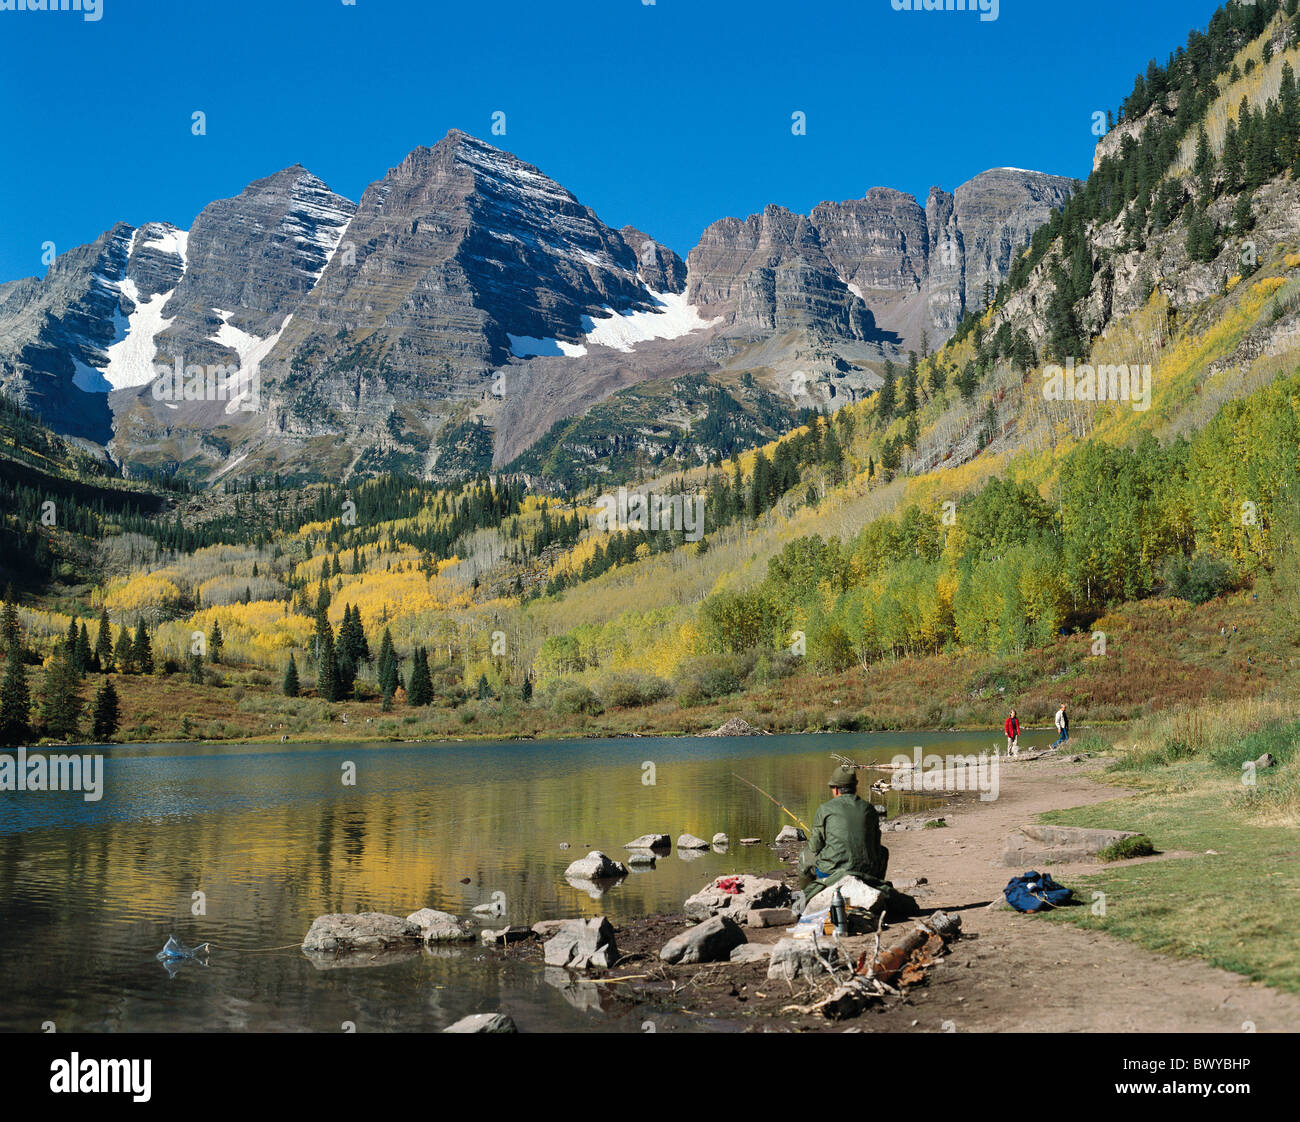 Fishing hinges fishing rods aspen trees mountains mountain for Fishing lakes in colorado springs